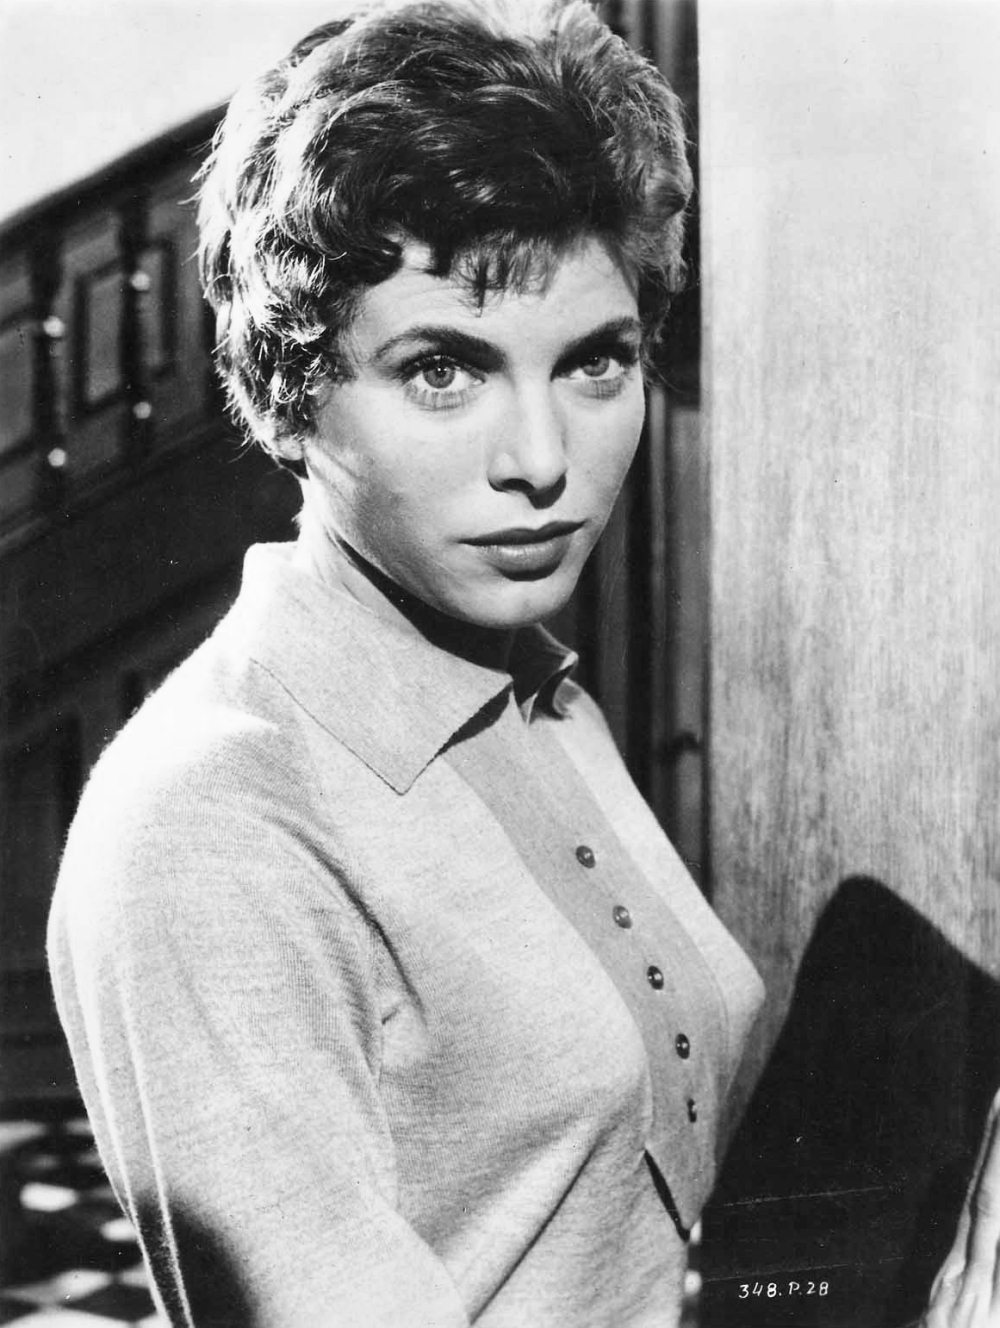 Billie Whitelaw - No Love for Johnnie